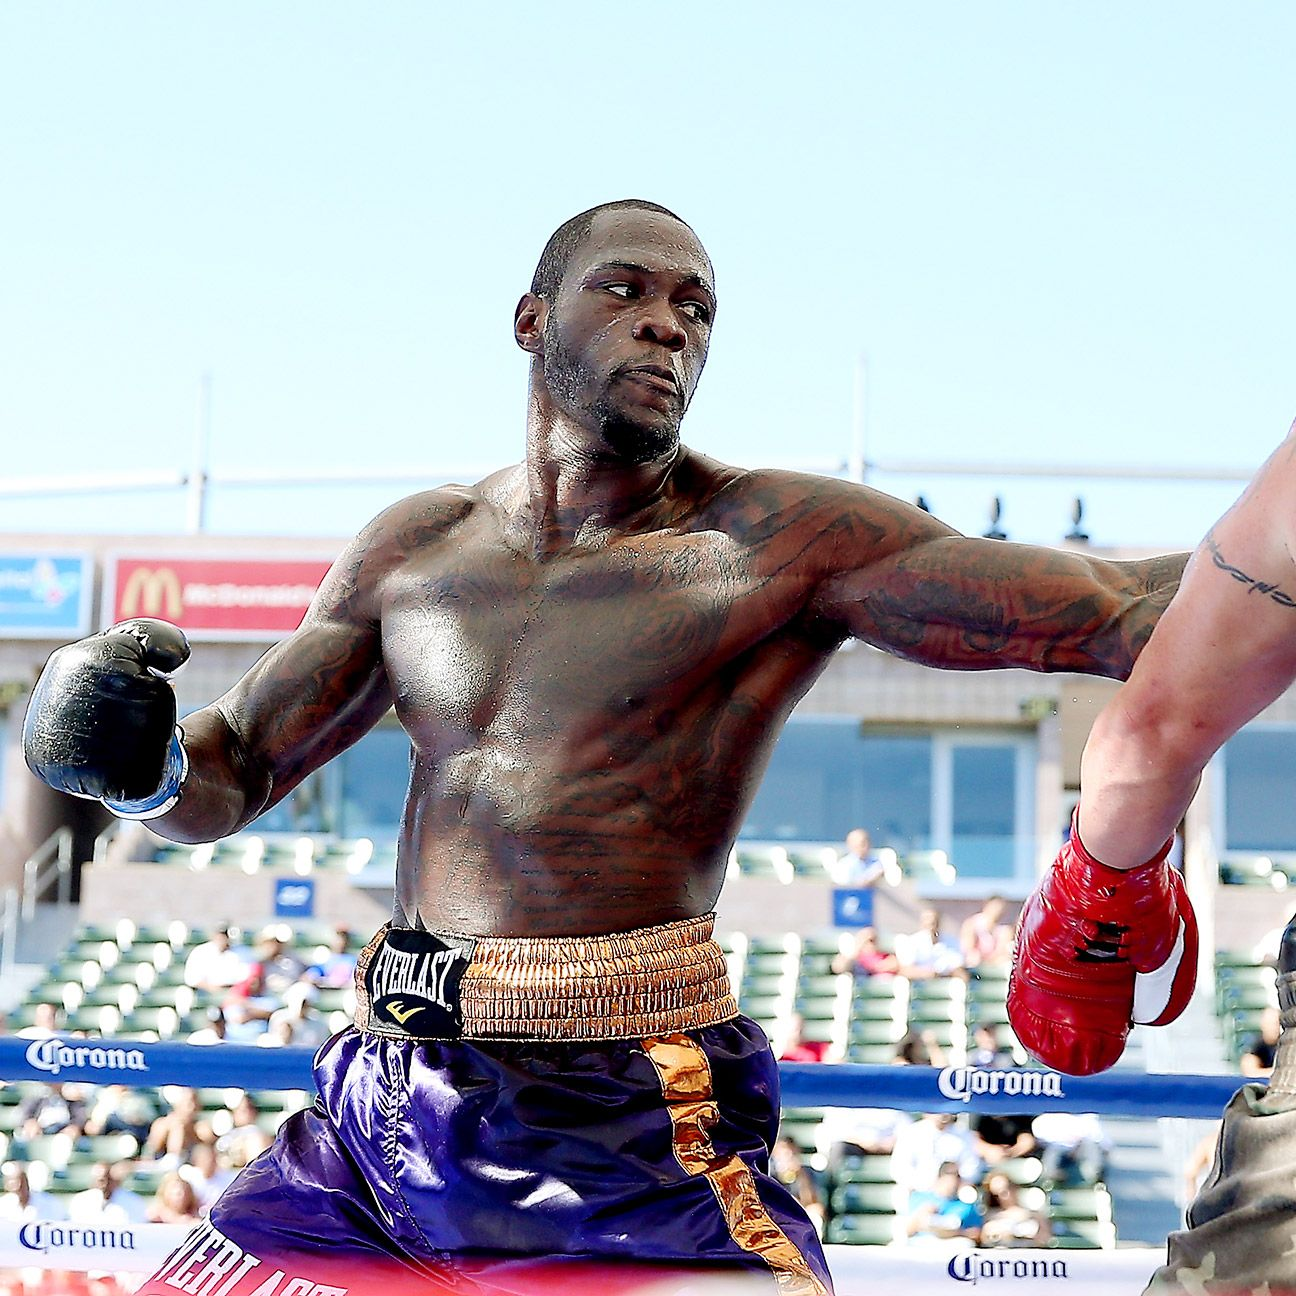 Tuscaloosa Native Deontay Wilder To Make First Title